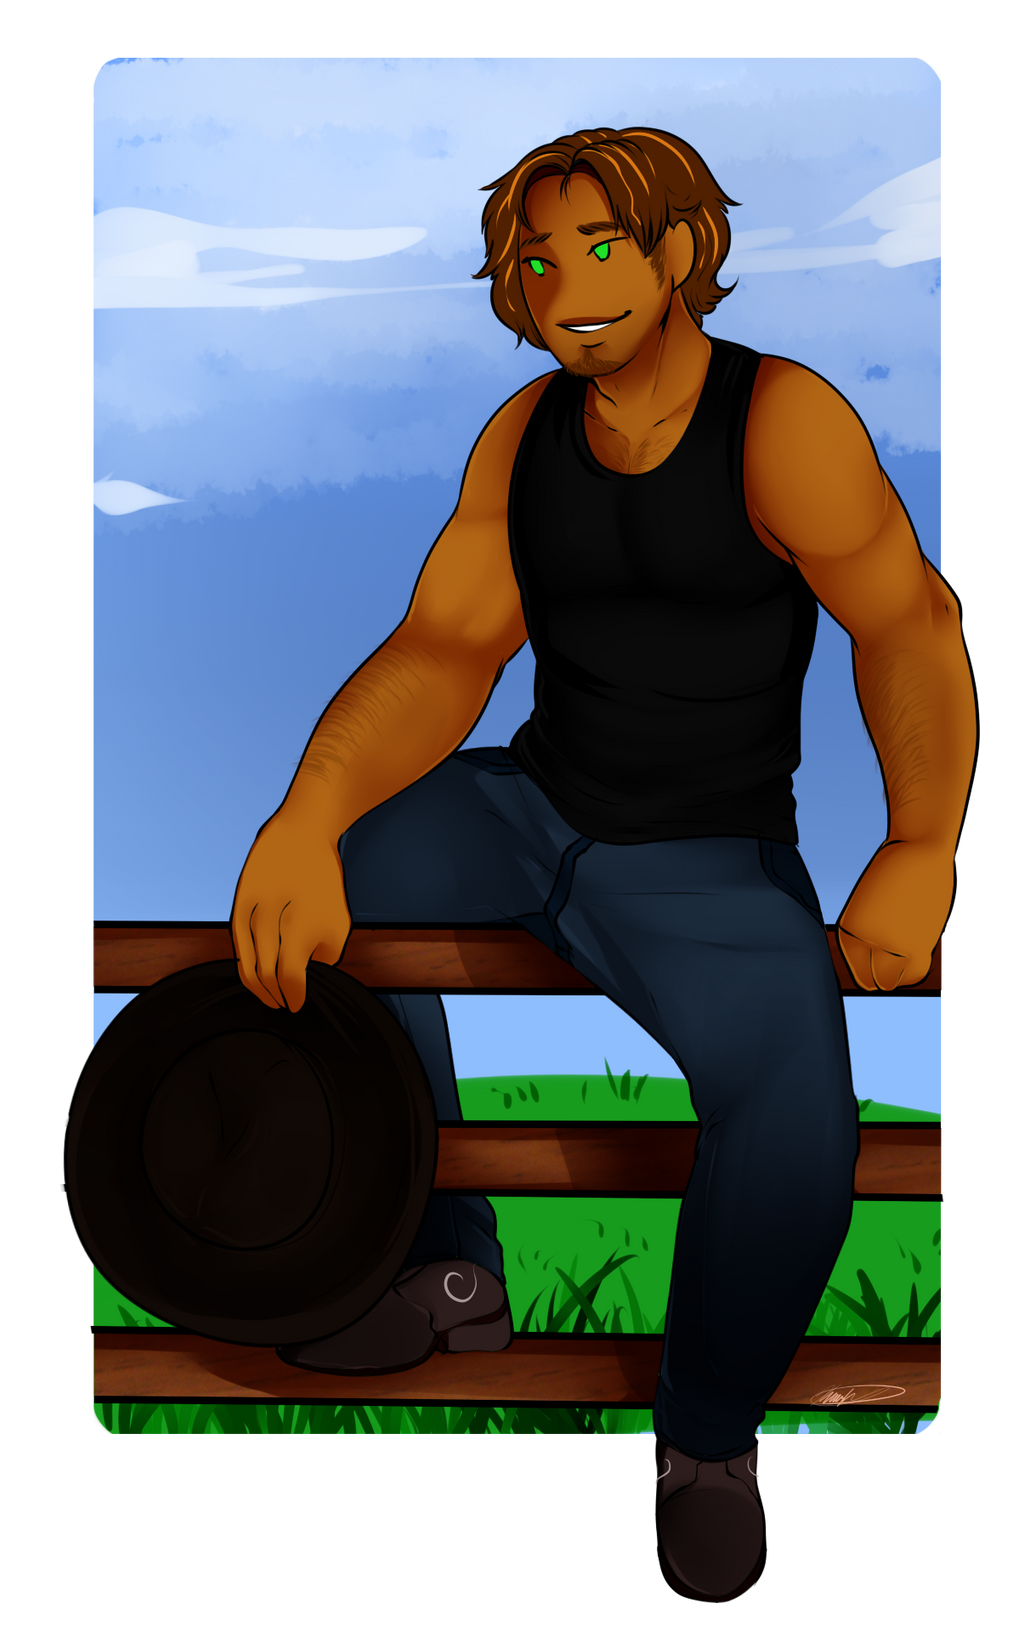 Dan The Gardener by GingerQuin